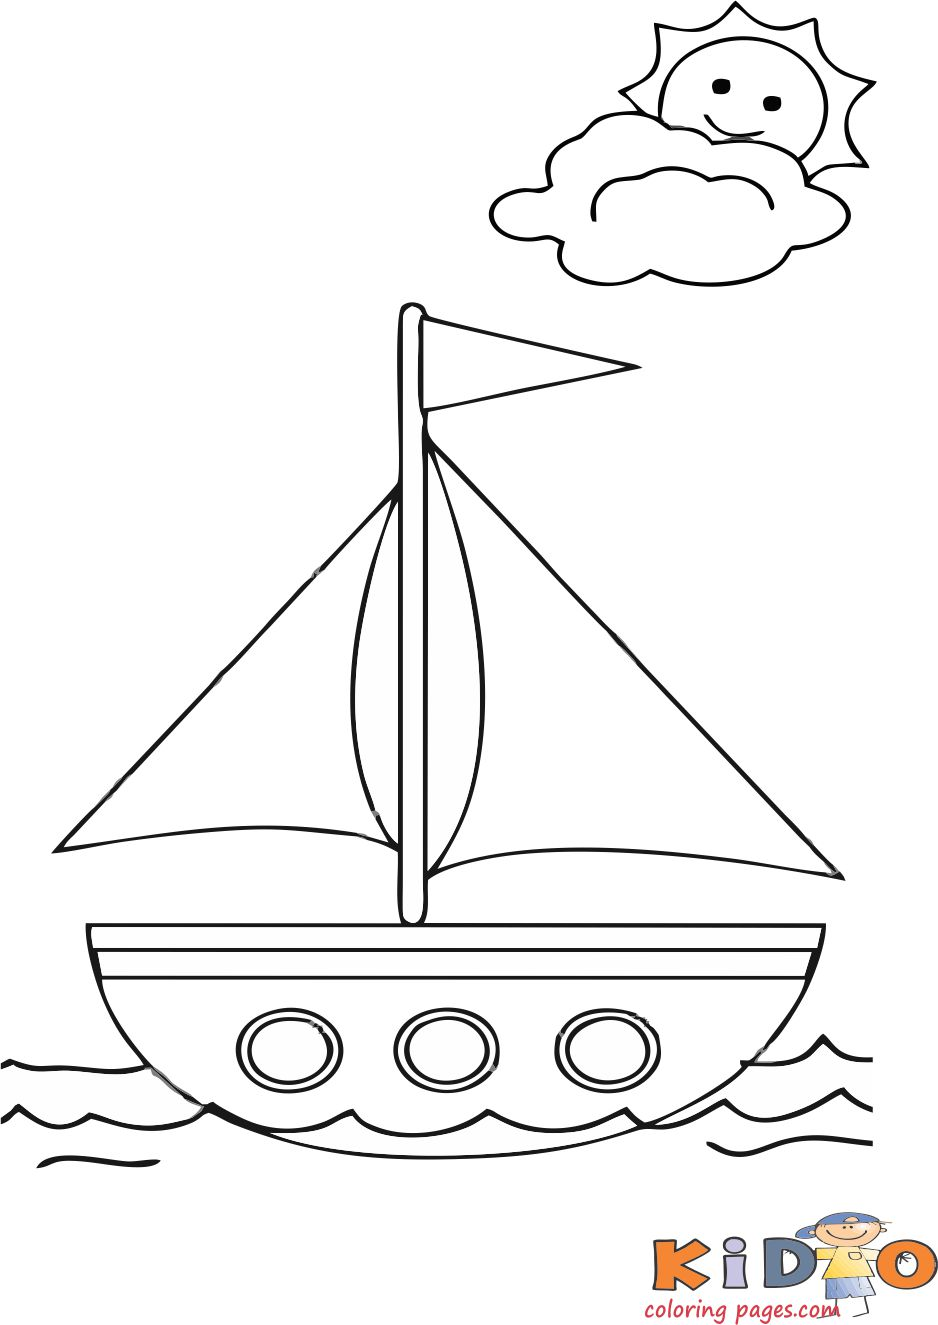 Summer Boat Coloring Pages For Kids Kids Coloring Pages